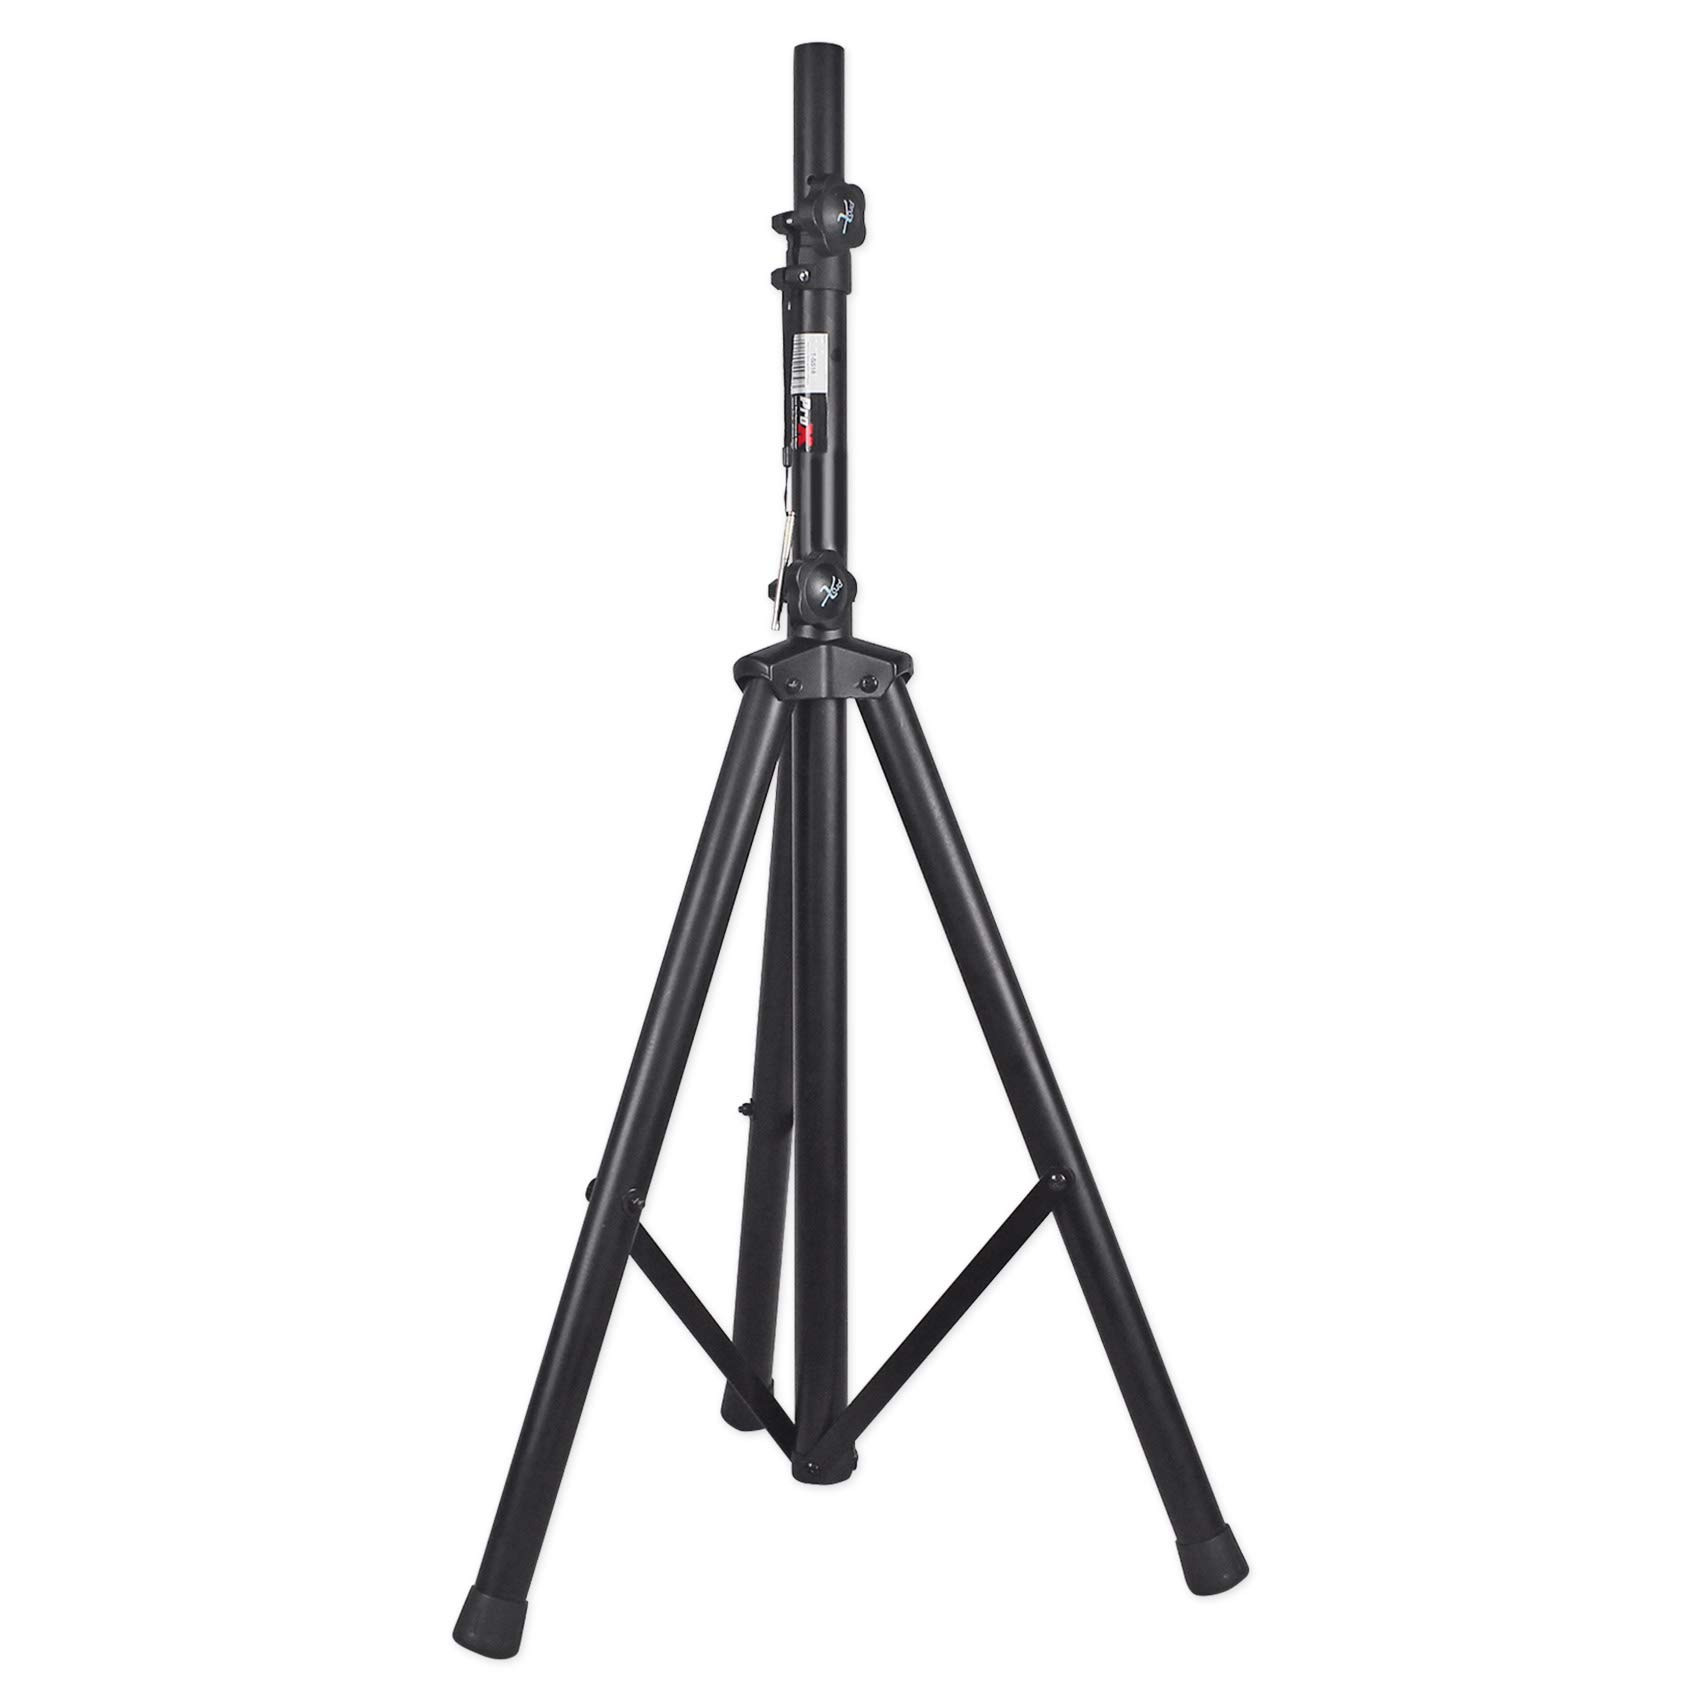 ProX Cases T-SS18 Black Heavy Duty Tripod Pole-Mount Professional Speaker Stand With Non-Slip Rubber Feet And Black Powder Coat Finish by PRO X CASES